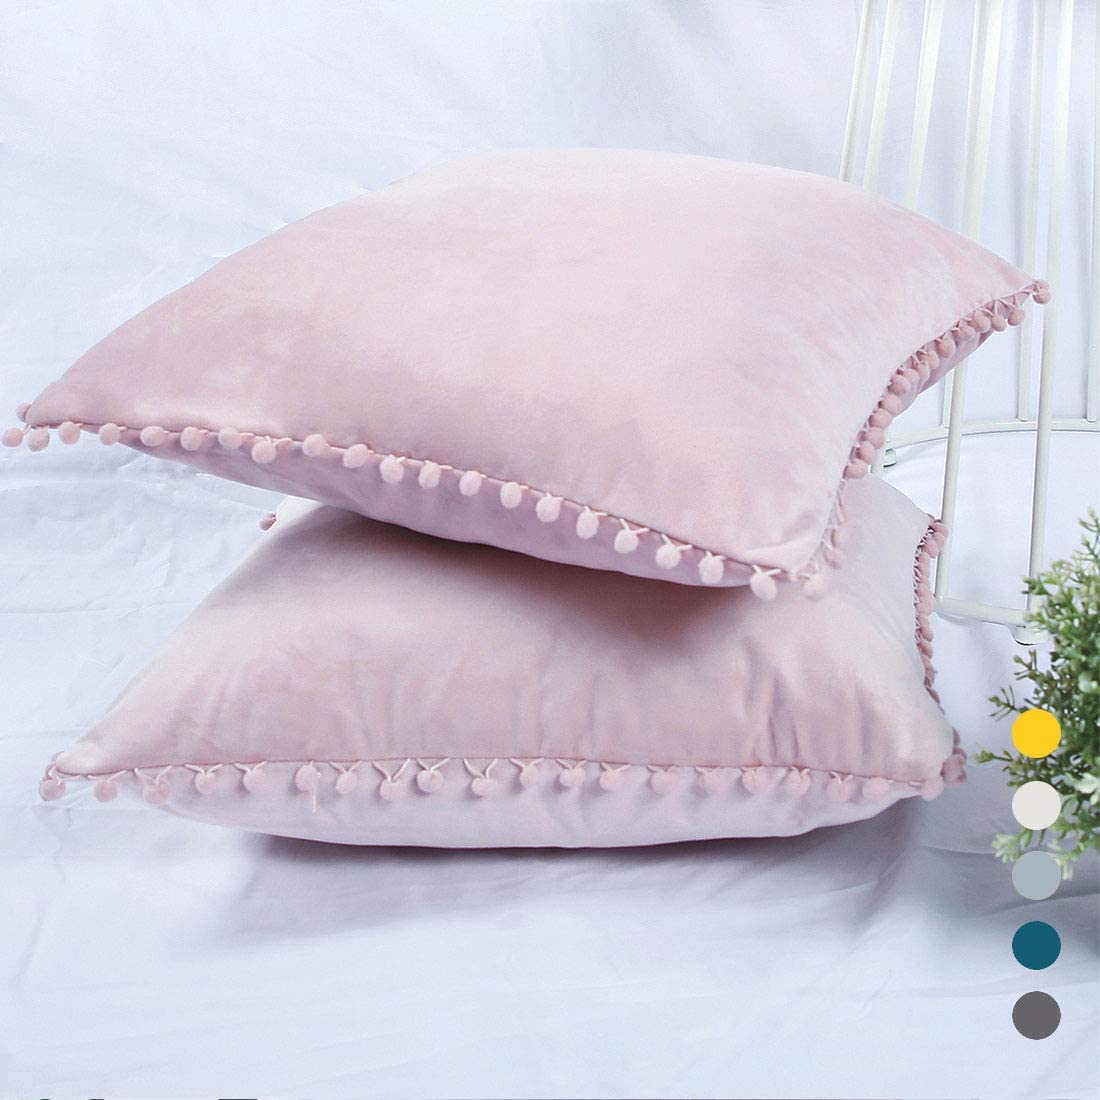 YINFUNG Pom Pom Pillow Covers Pink Velvet Pom Throw Pillow Cover 12x12  Pompom Trim Fringe Pillow Cases Pastel Pale Pink Blush Ball Couch Sofa  Accent ...